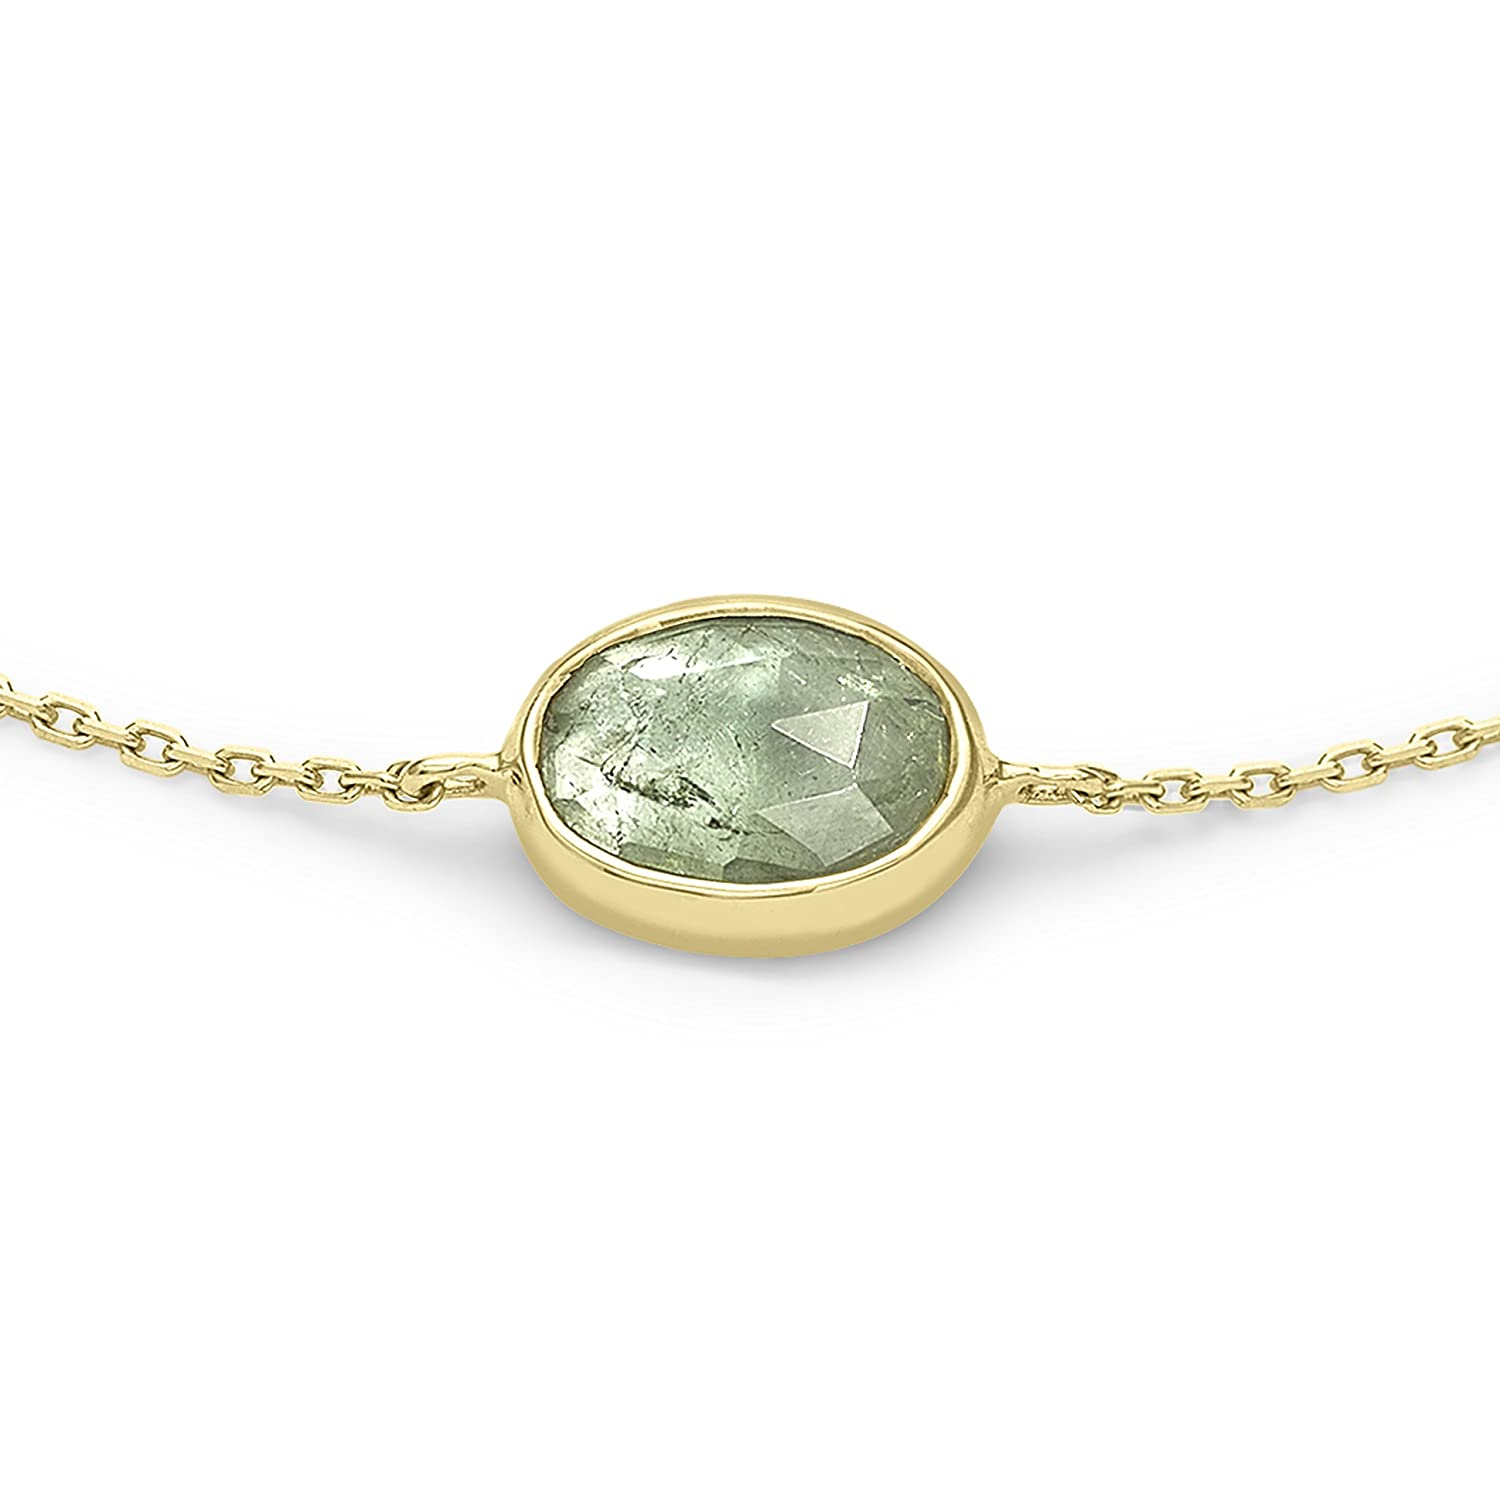 Celine d'Aoust Women's 14ct Yellow Gold Oval Green Tourmaline Collet Back Covered Maya Chain Bracelet hWWGyD0Vp